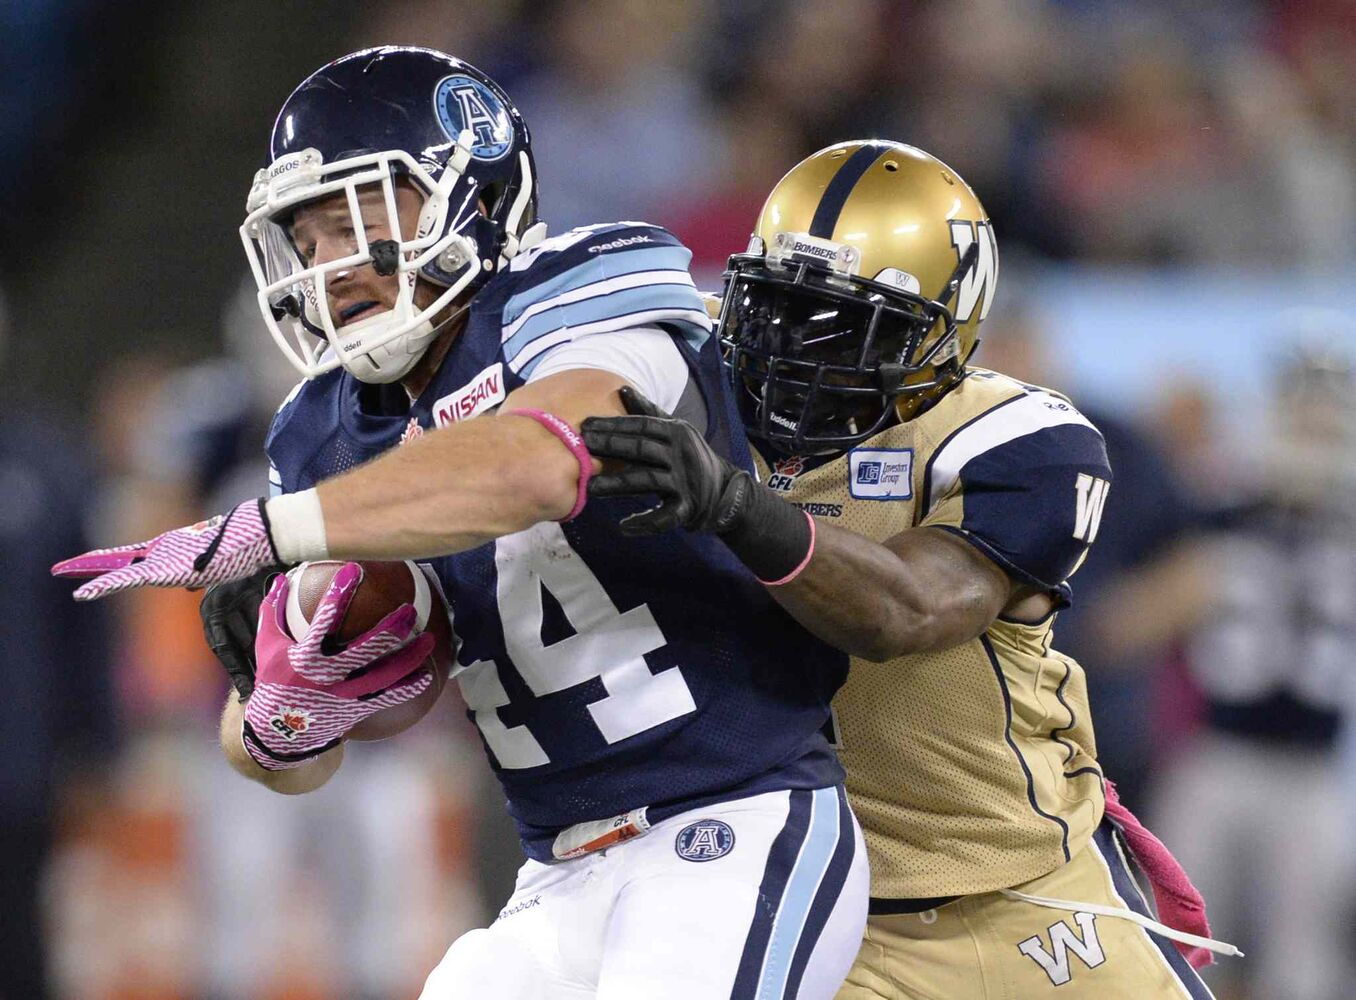 Toronto Argonauts' Chad Kackert runs the ball as a Winnipeg Blue Bombers player defends during the first quarter. (Frank Gunn / The Canadian Press)